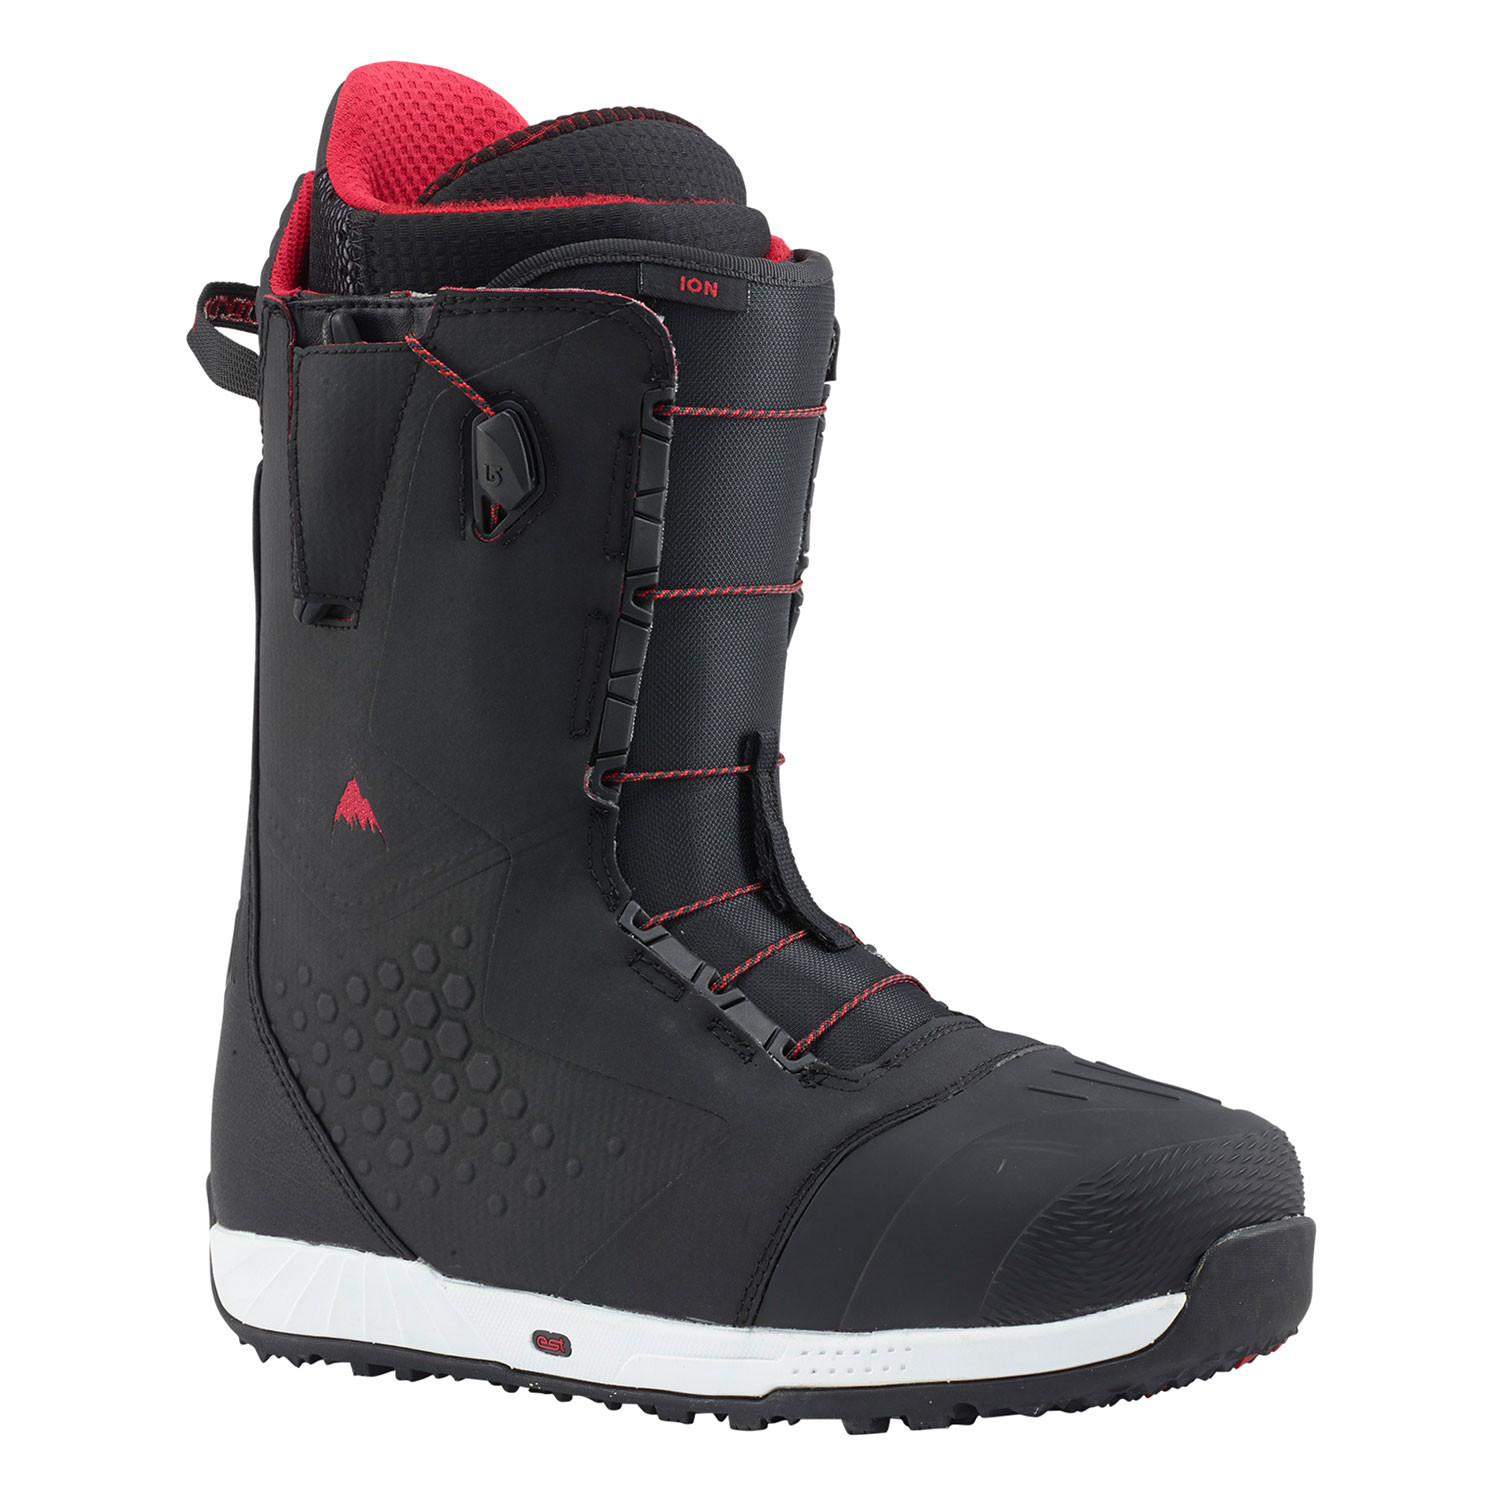 Boty Burton Ion black/red